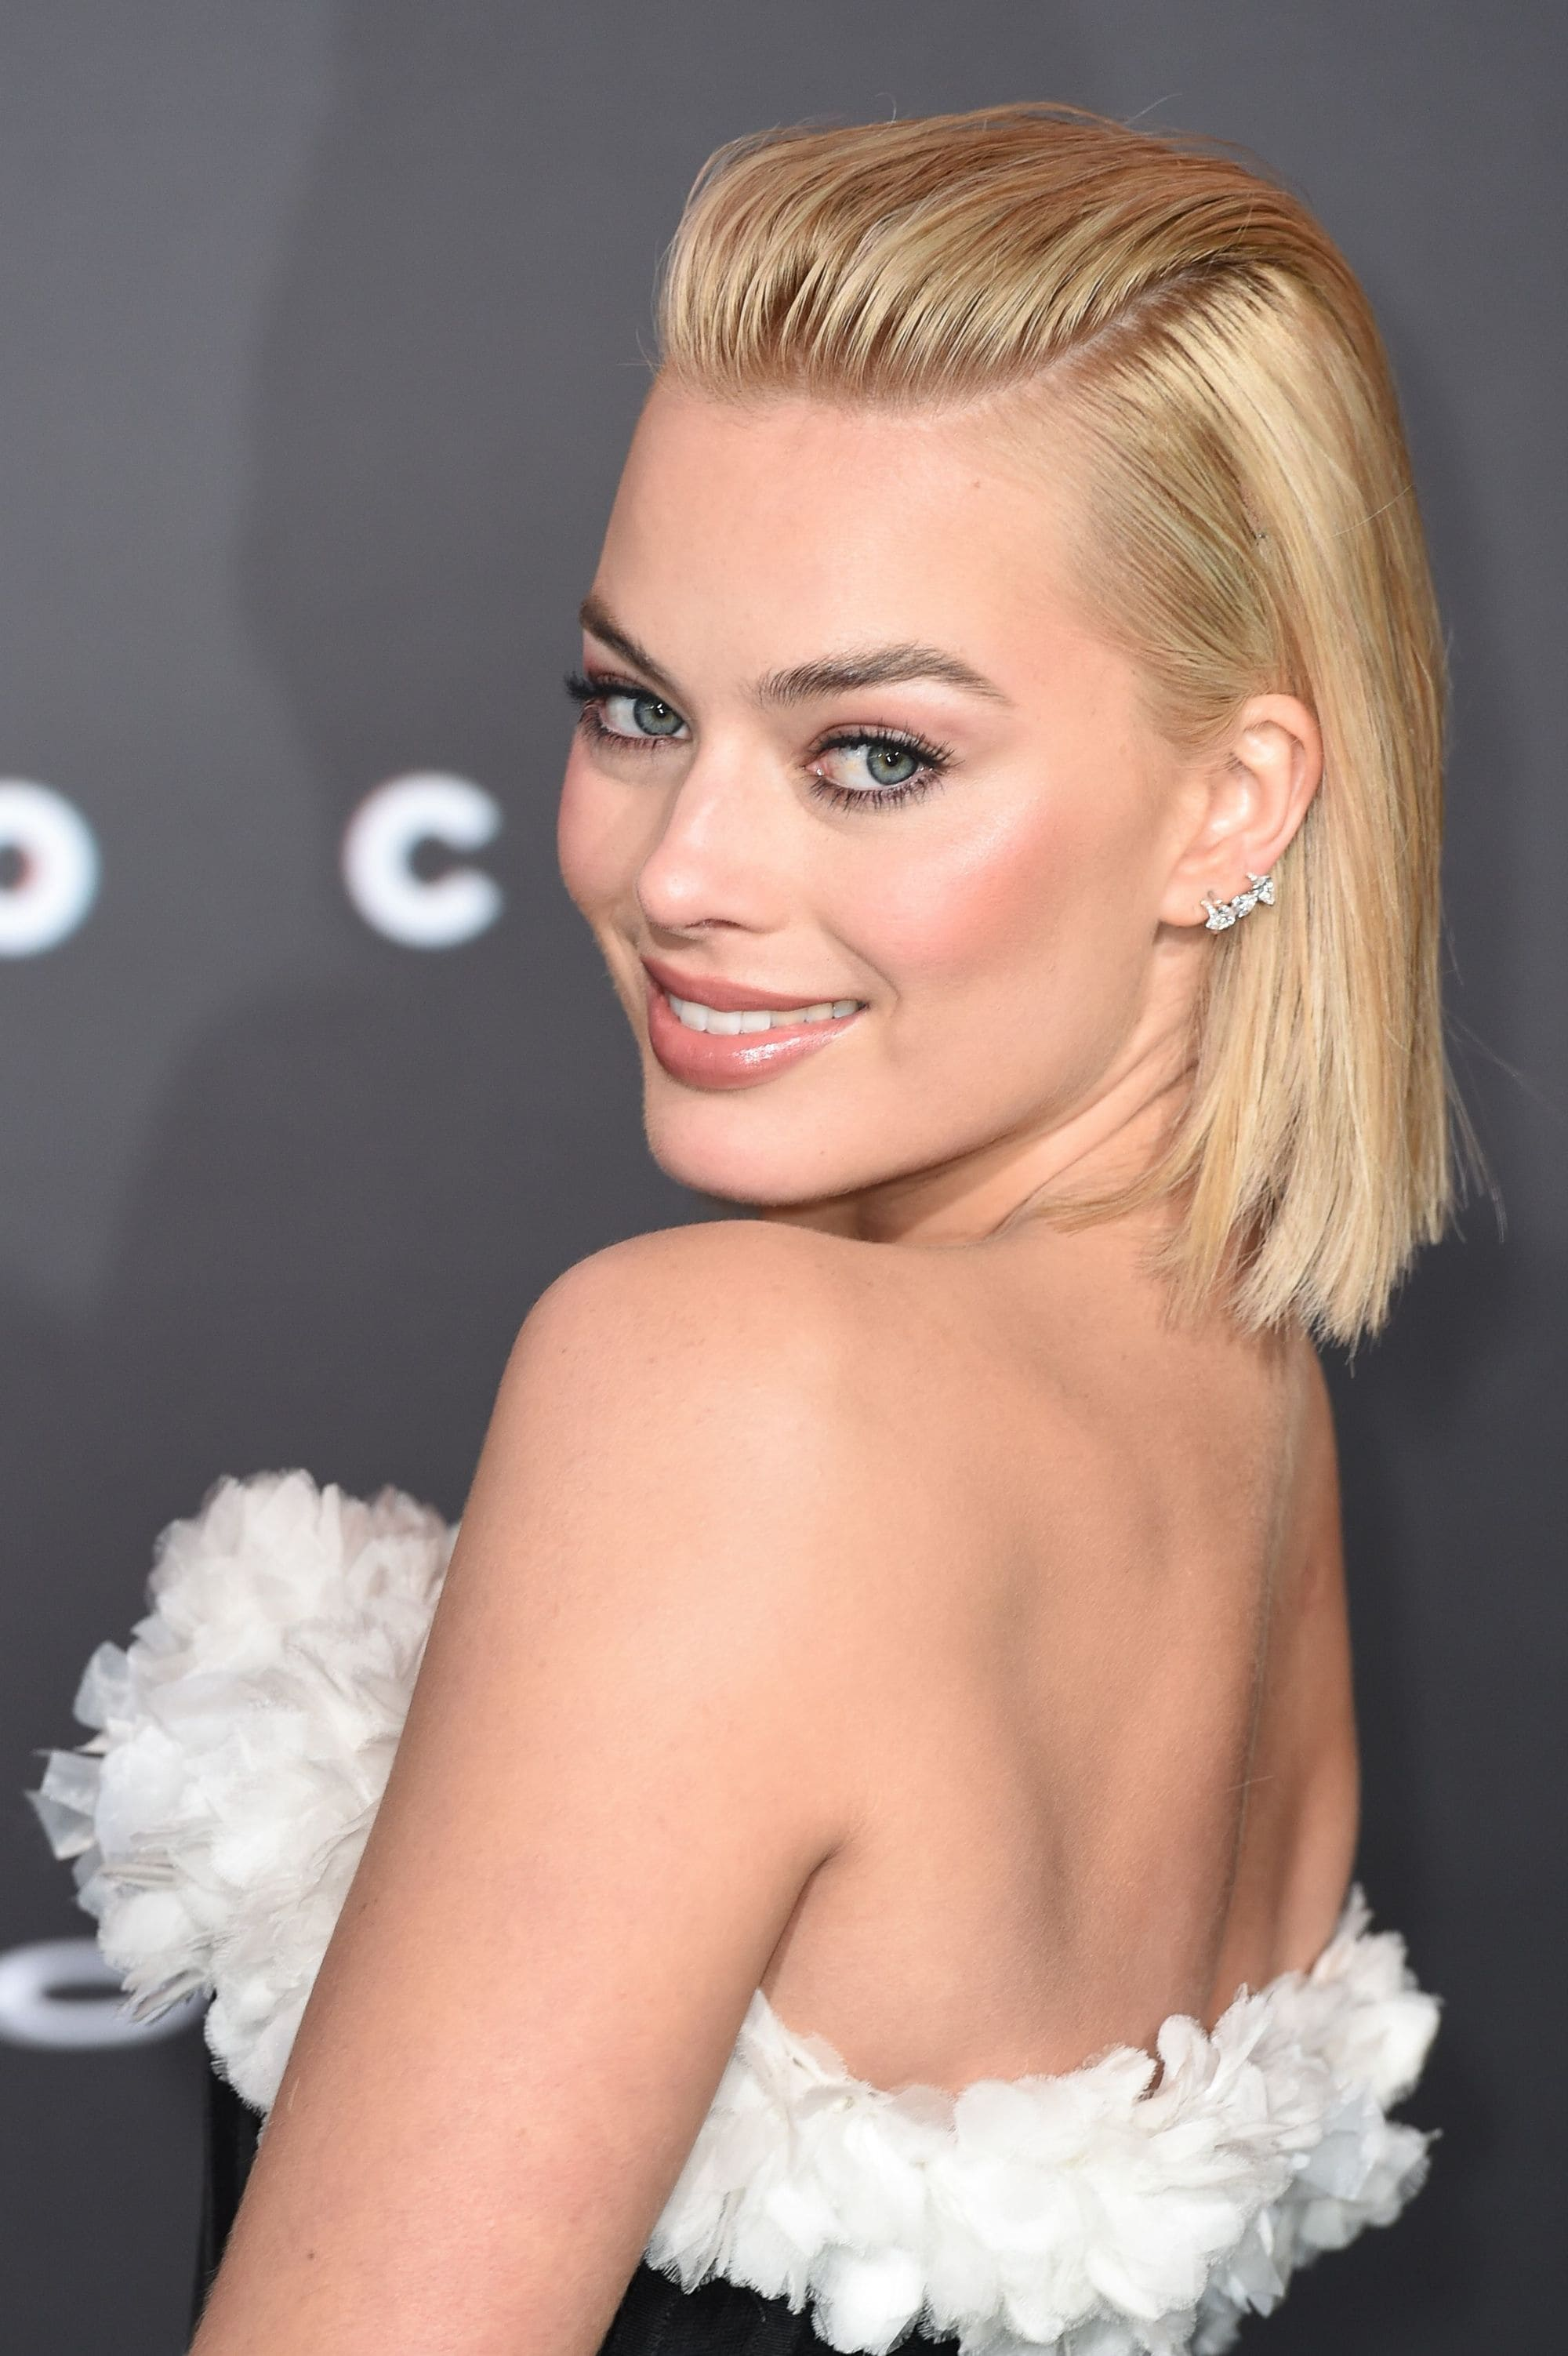 australian actress margot robbie with her shoulder length blonde hair in a slicked back quiff hairstyle